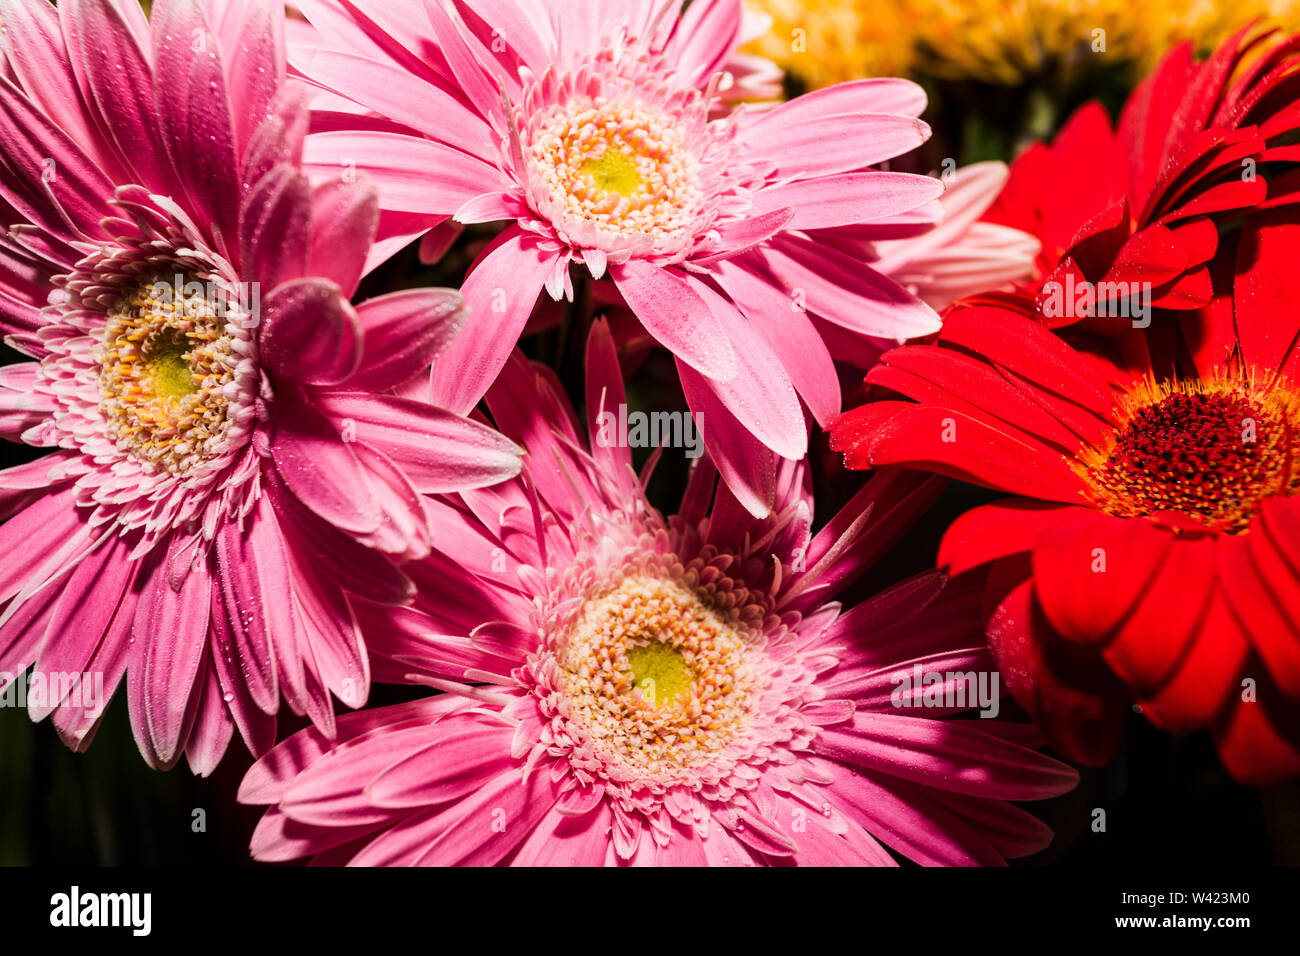 Pink and red bunch of flowers close up with long petals - Stock Image